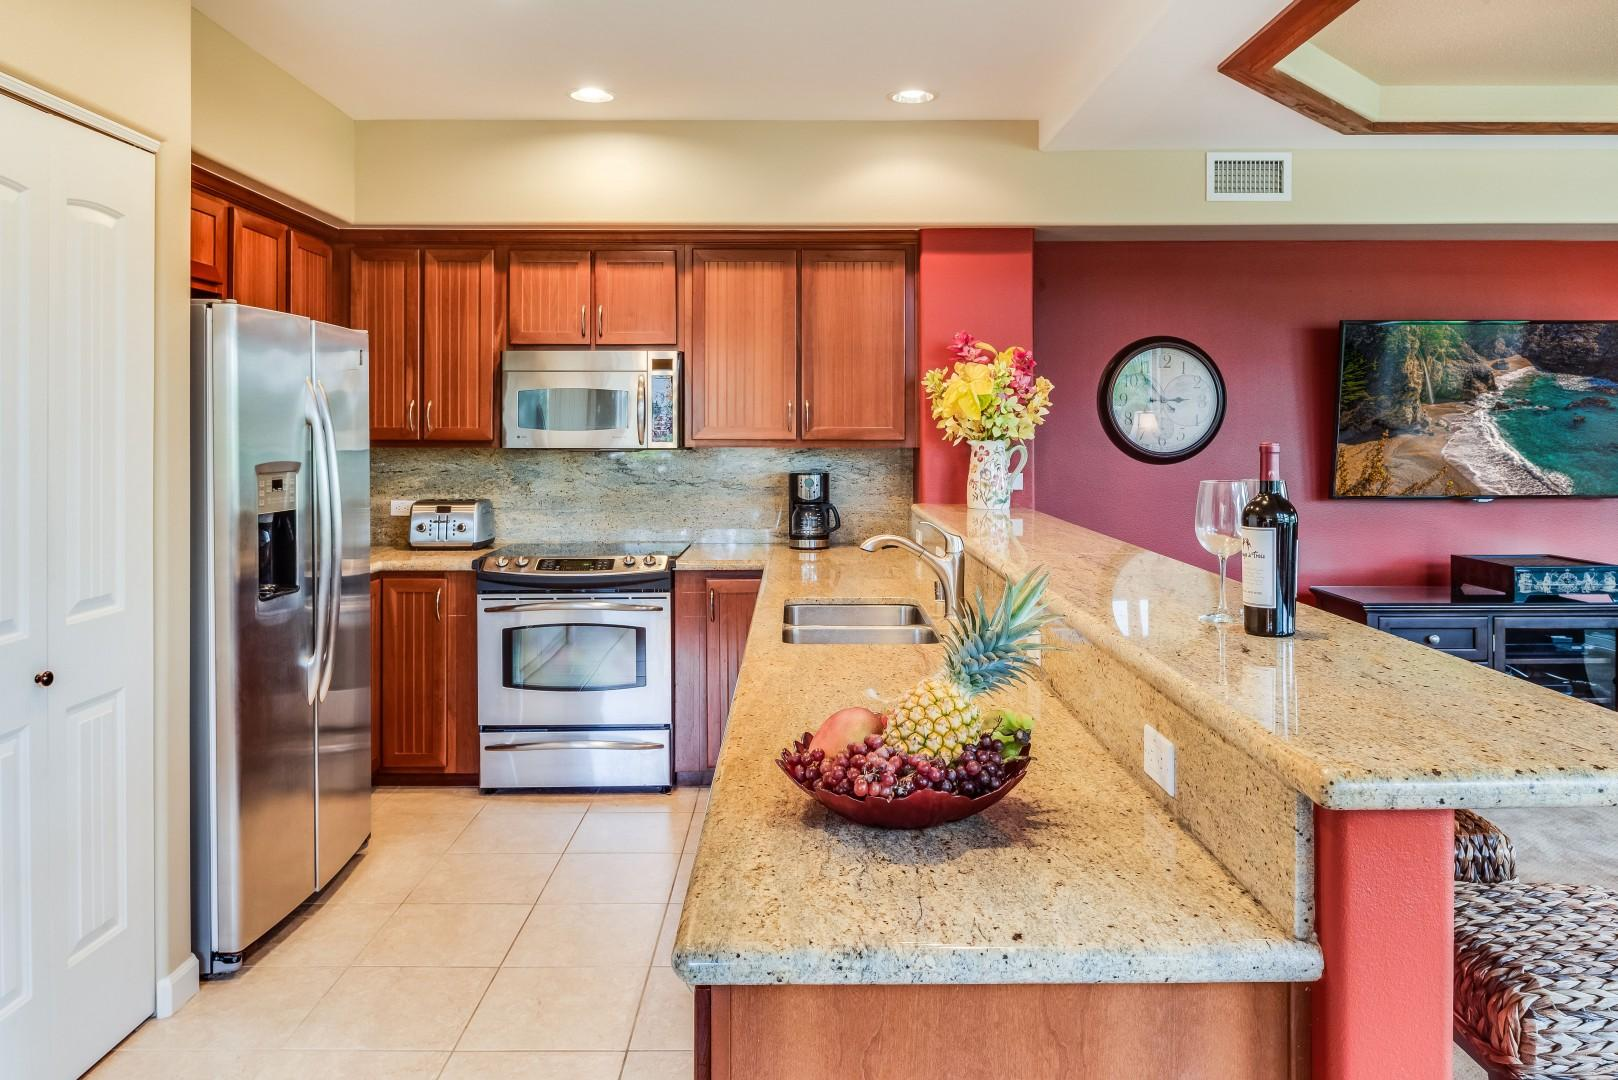 Spacious & Open Kitchen Fully Equipped for All Your Cooking Needs